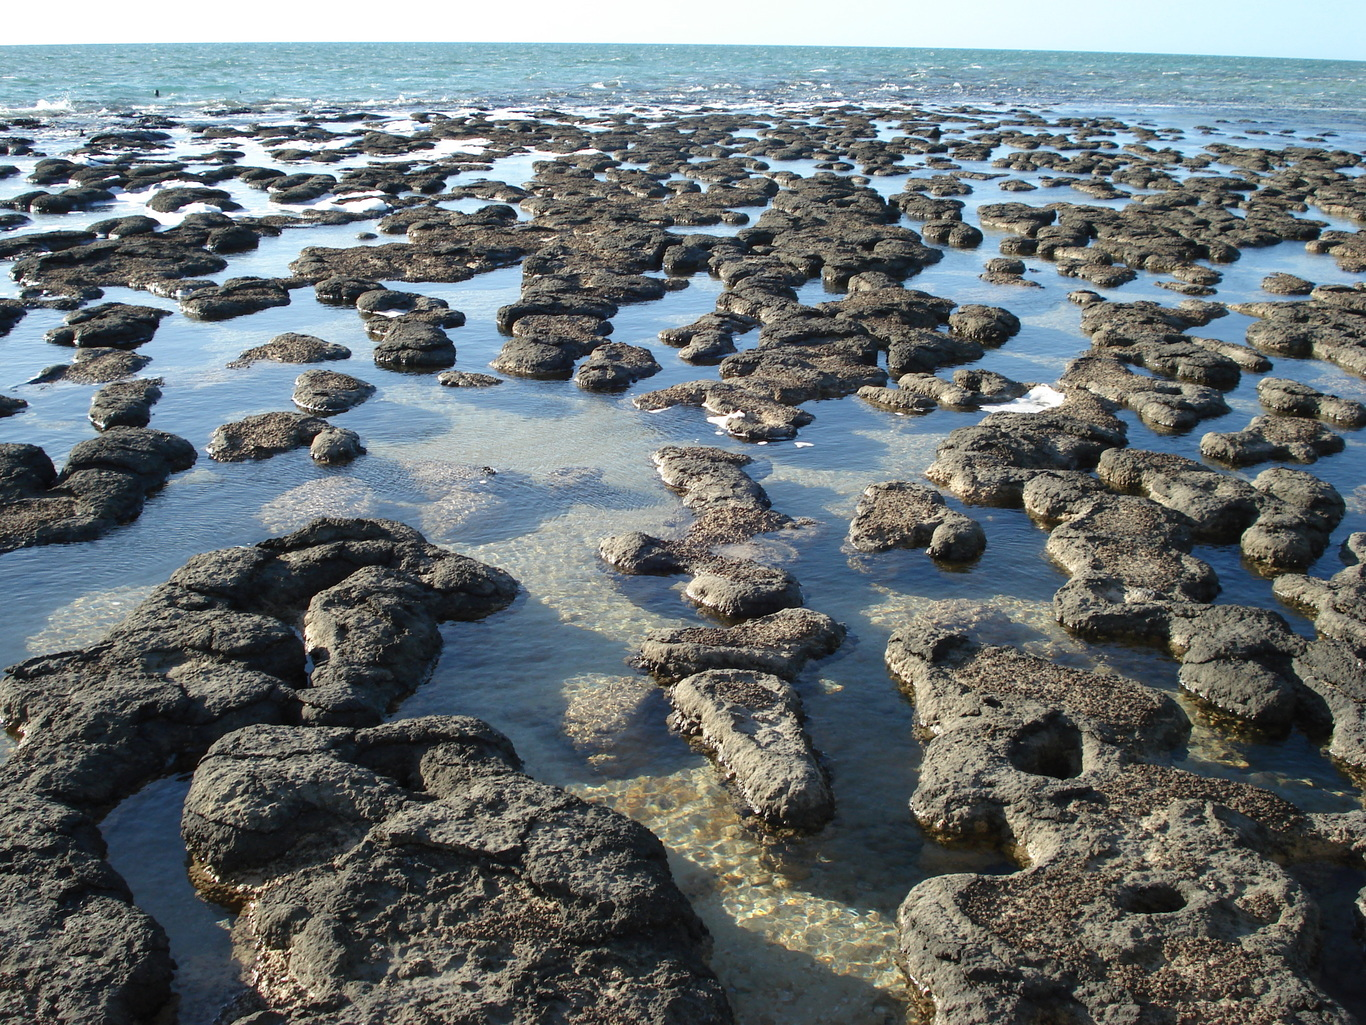 Stromatolites at Shark Bay in Western Australia. Flickr/Paul Morris, CC BY